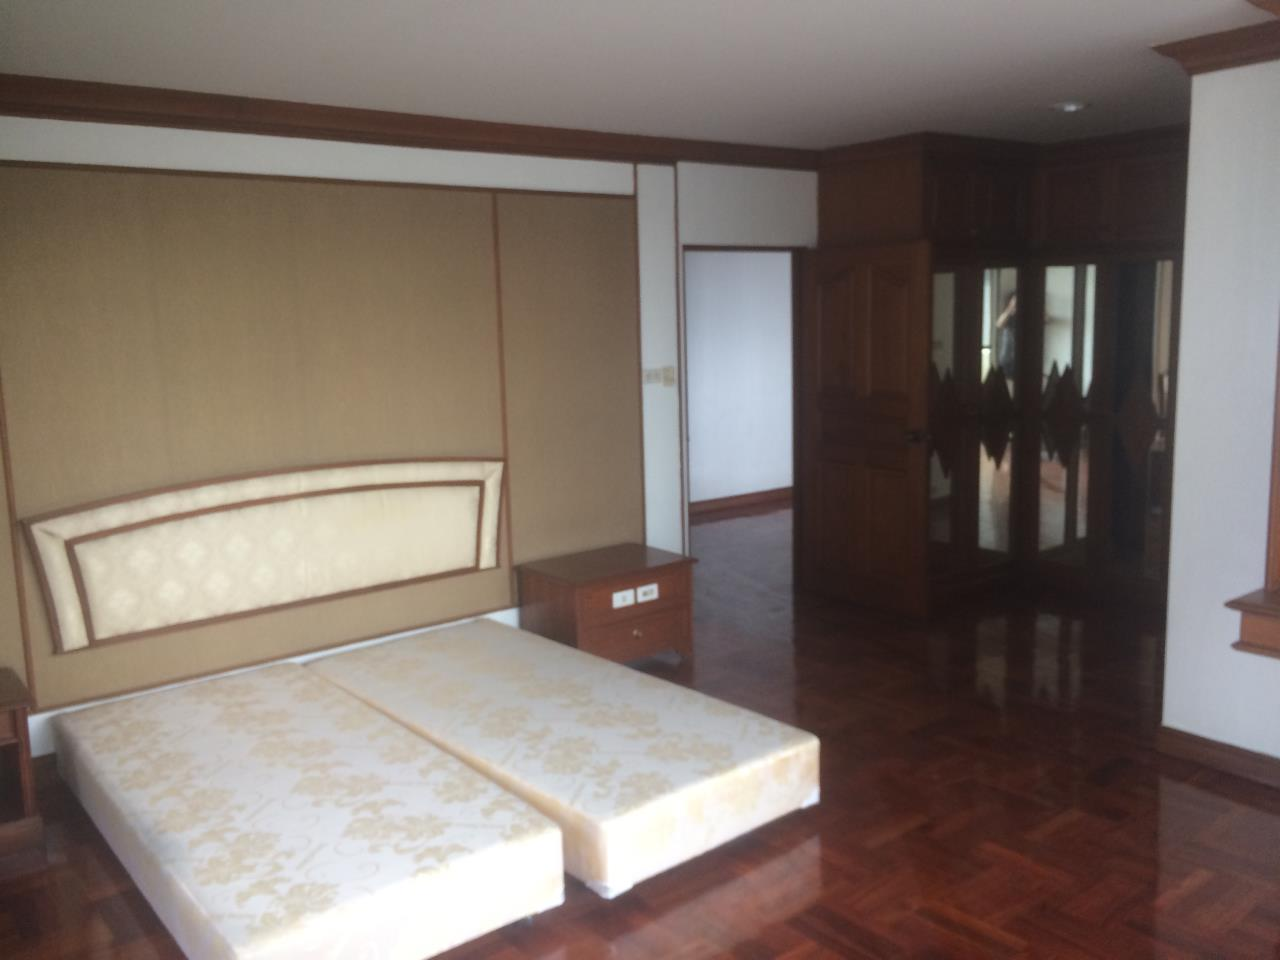 RE/MAX BestLife Agency's Charter House 3+1 Bedrooms, 75K, 320SQM Phrom Pong 8